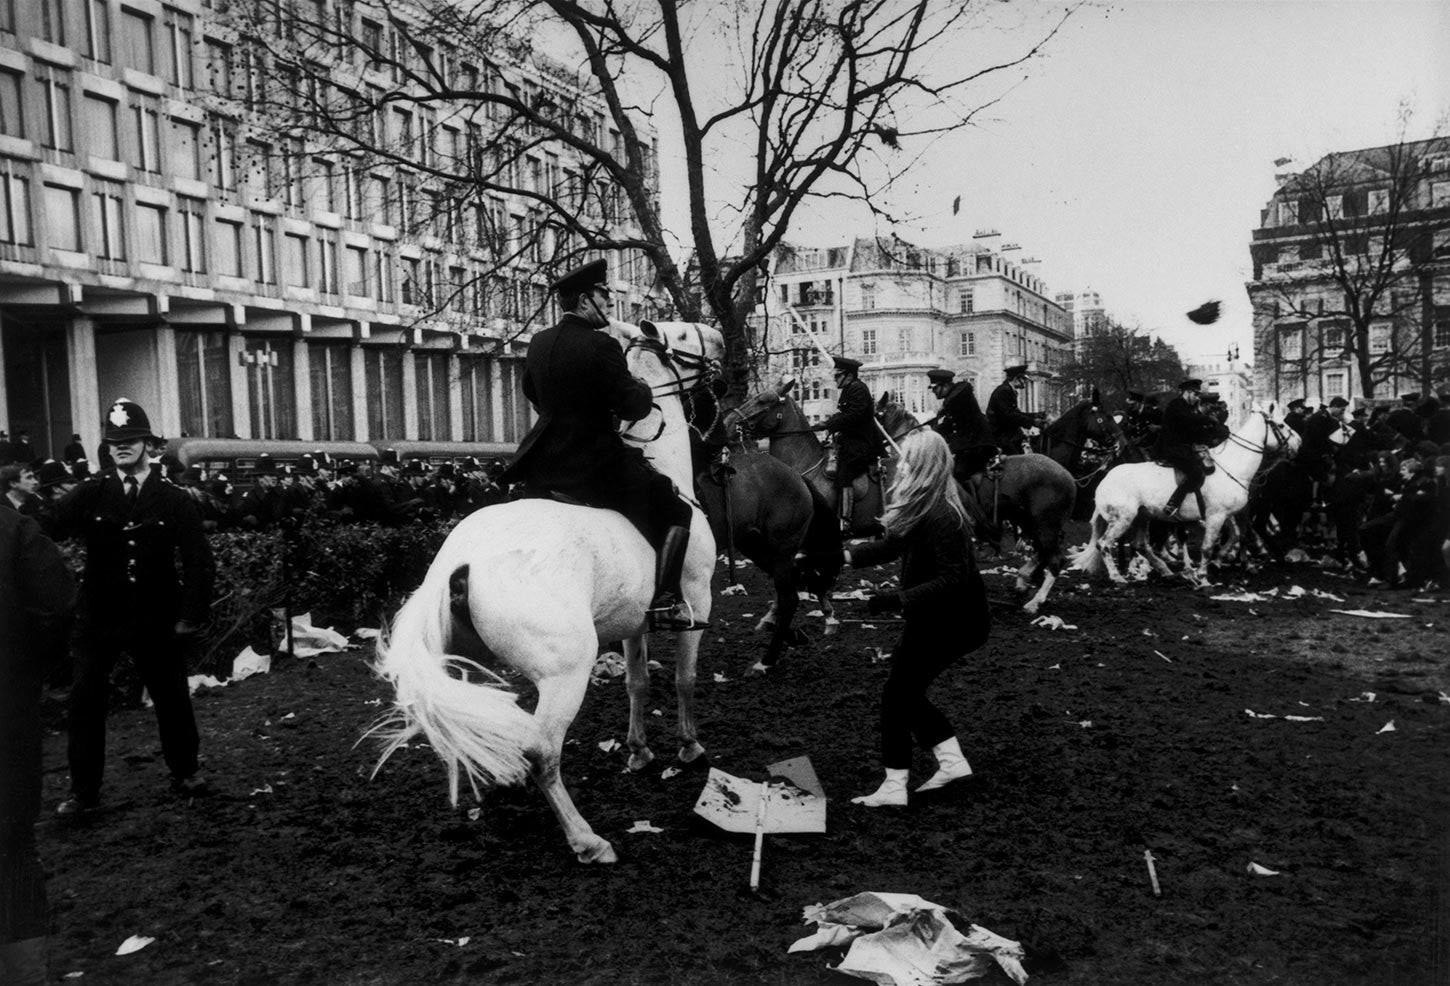 Anti-Vietnam War riots in front of the American Embassy in London. 1968.